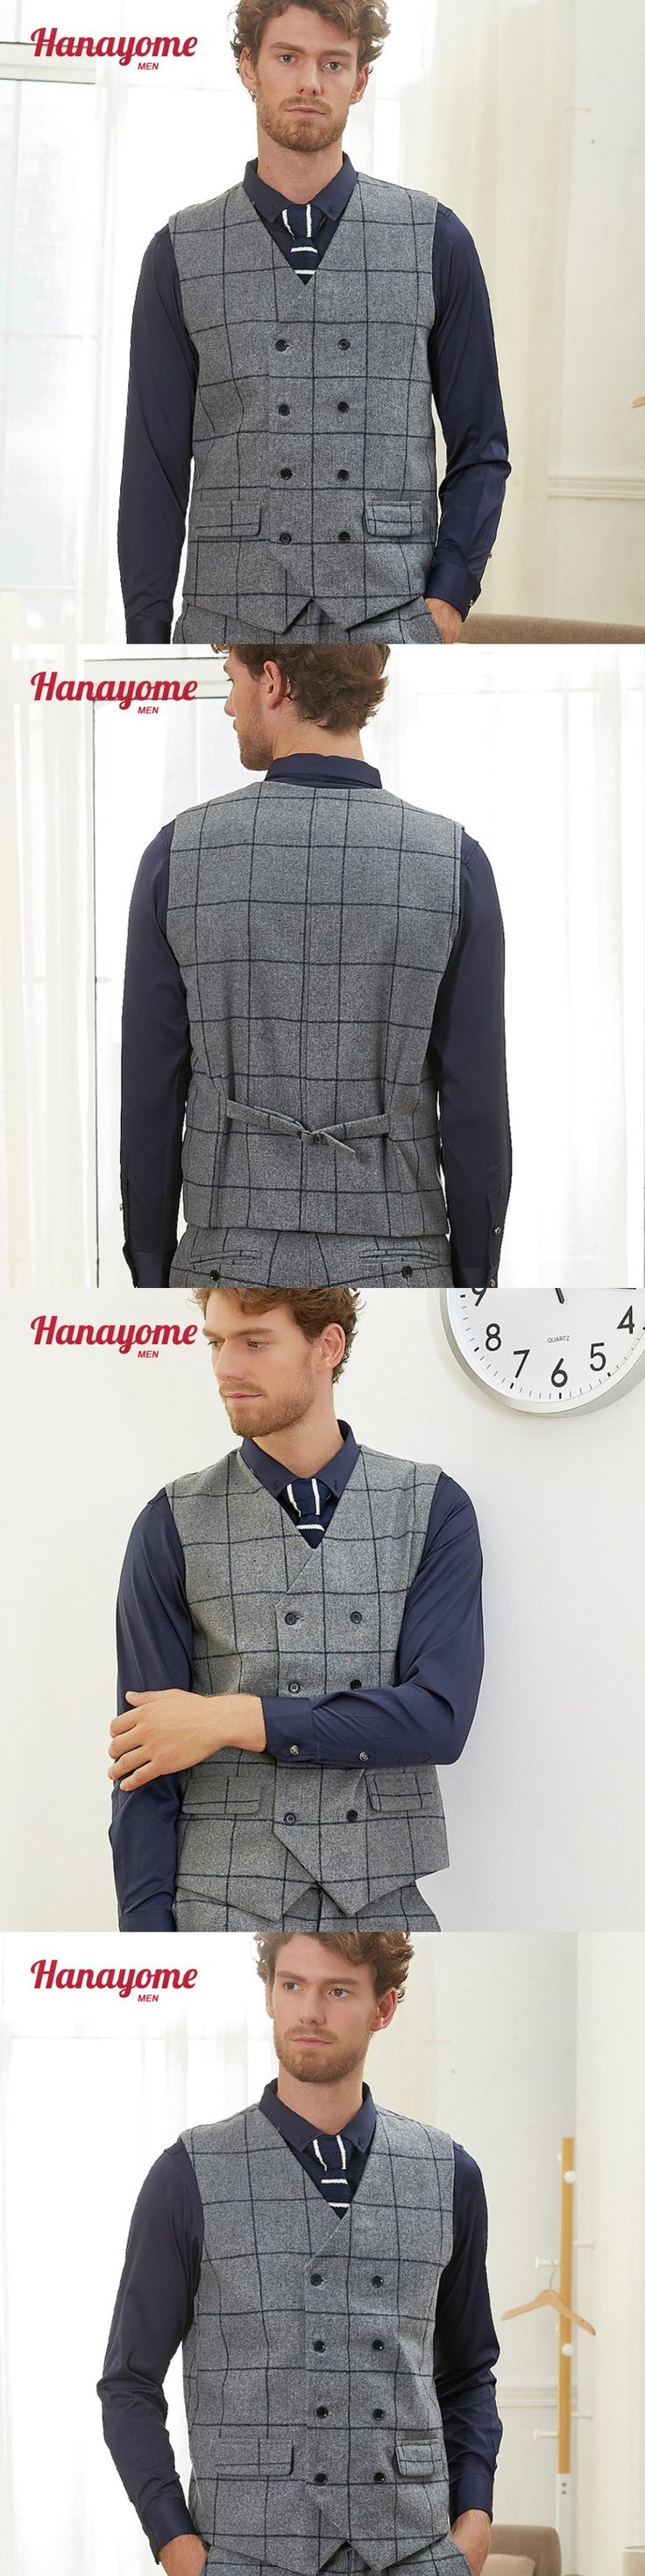 Men's Double-breasted Grey Suit Vest Regular Fit Checked Suit Waistcoats Formal Party Tuxedo Blazer Adjustable Waistcoats SI123